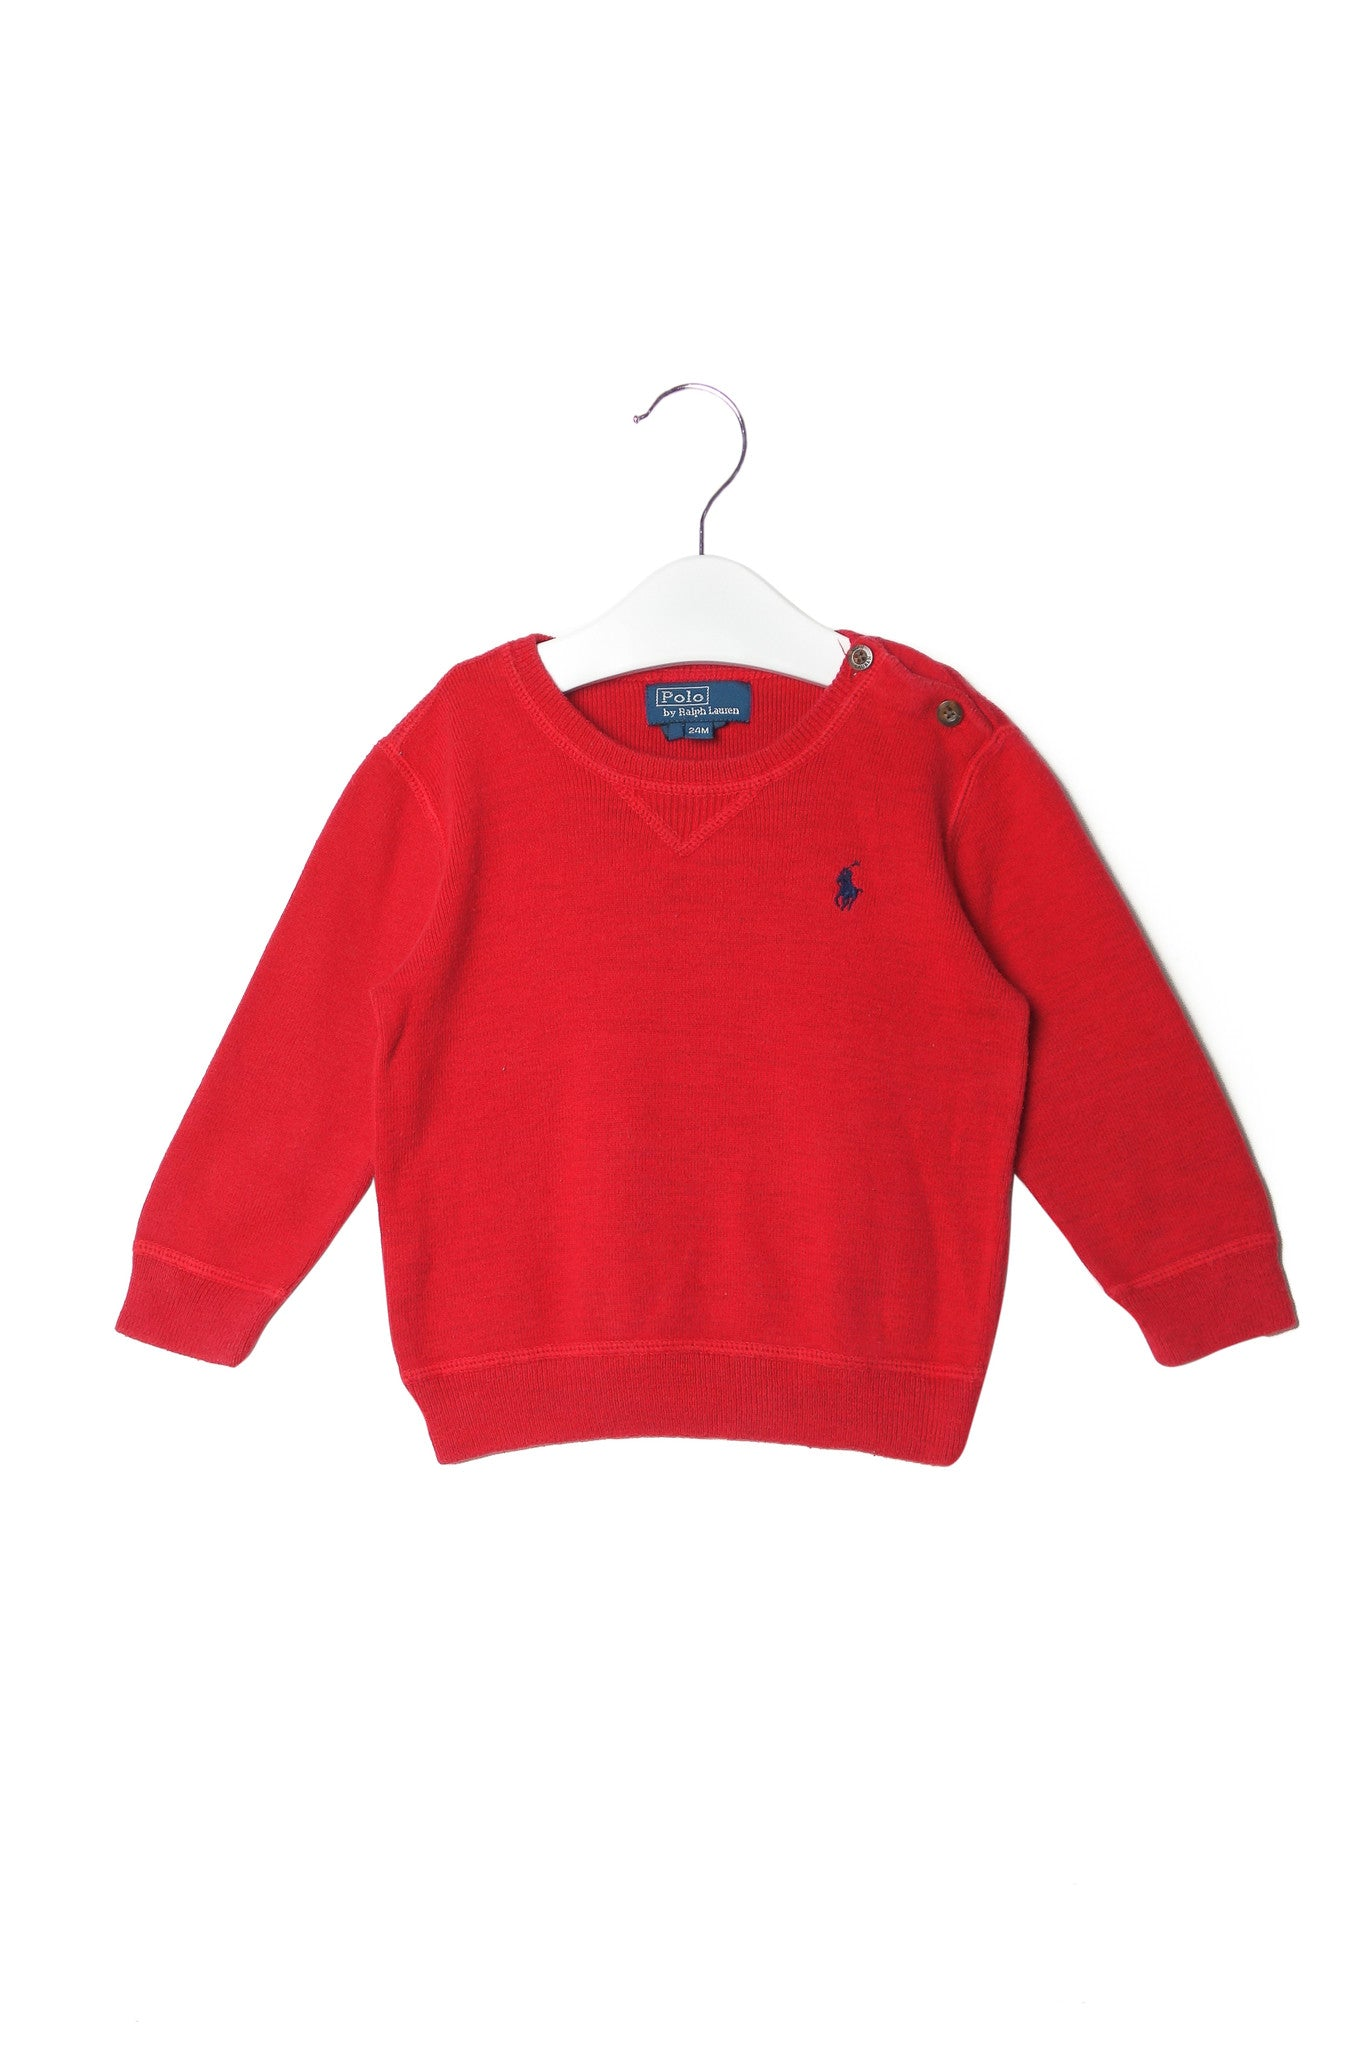 10002582 Polo Ralph Lauren Kids~Sweater 2T at Retykle